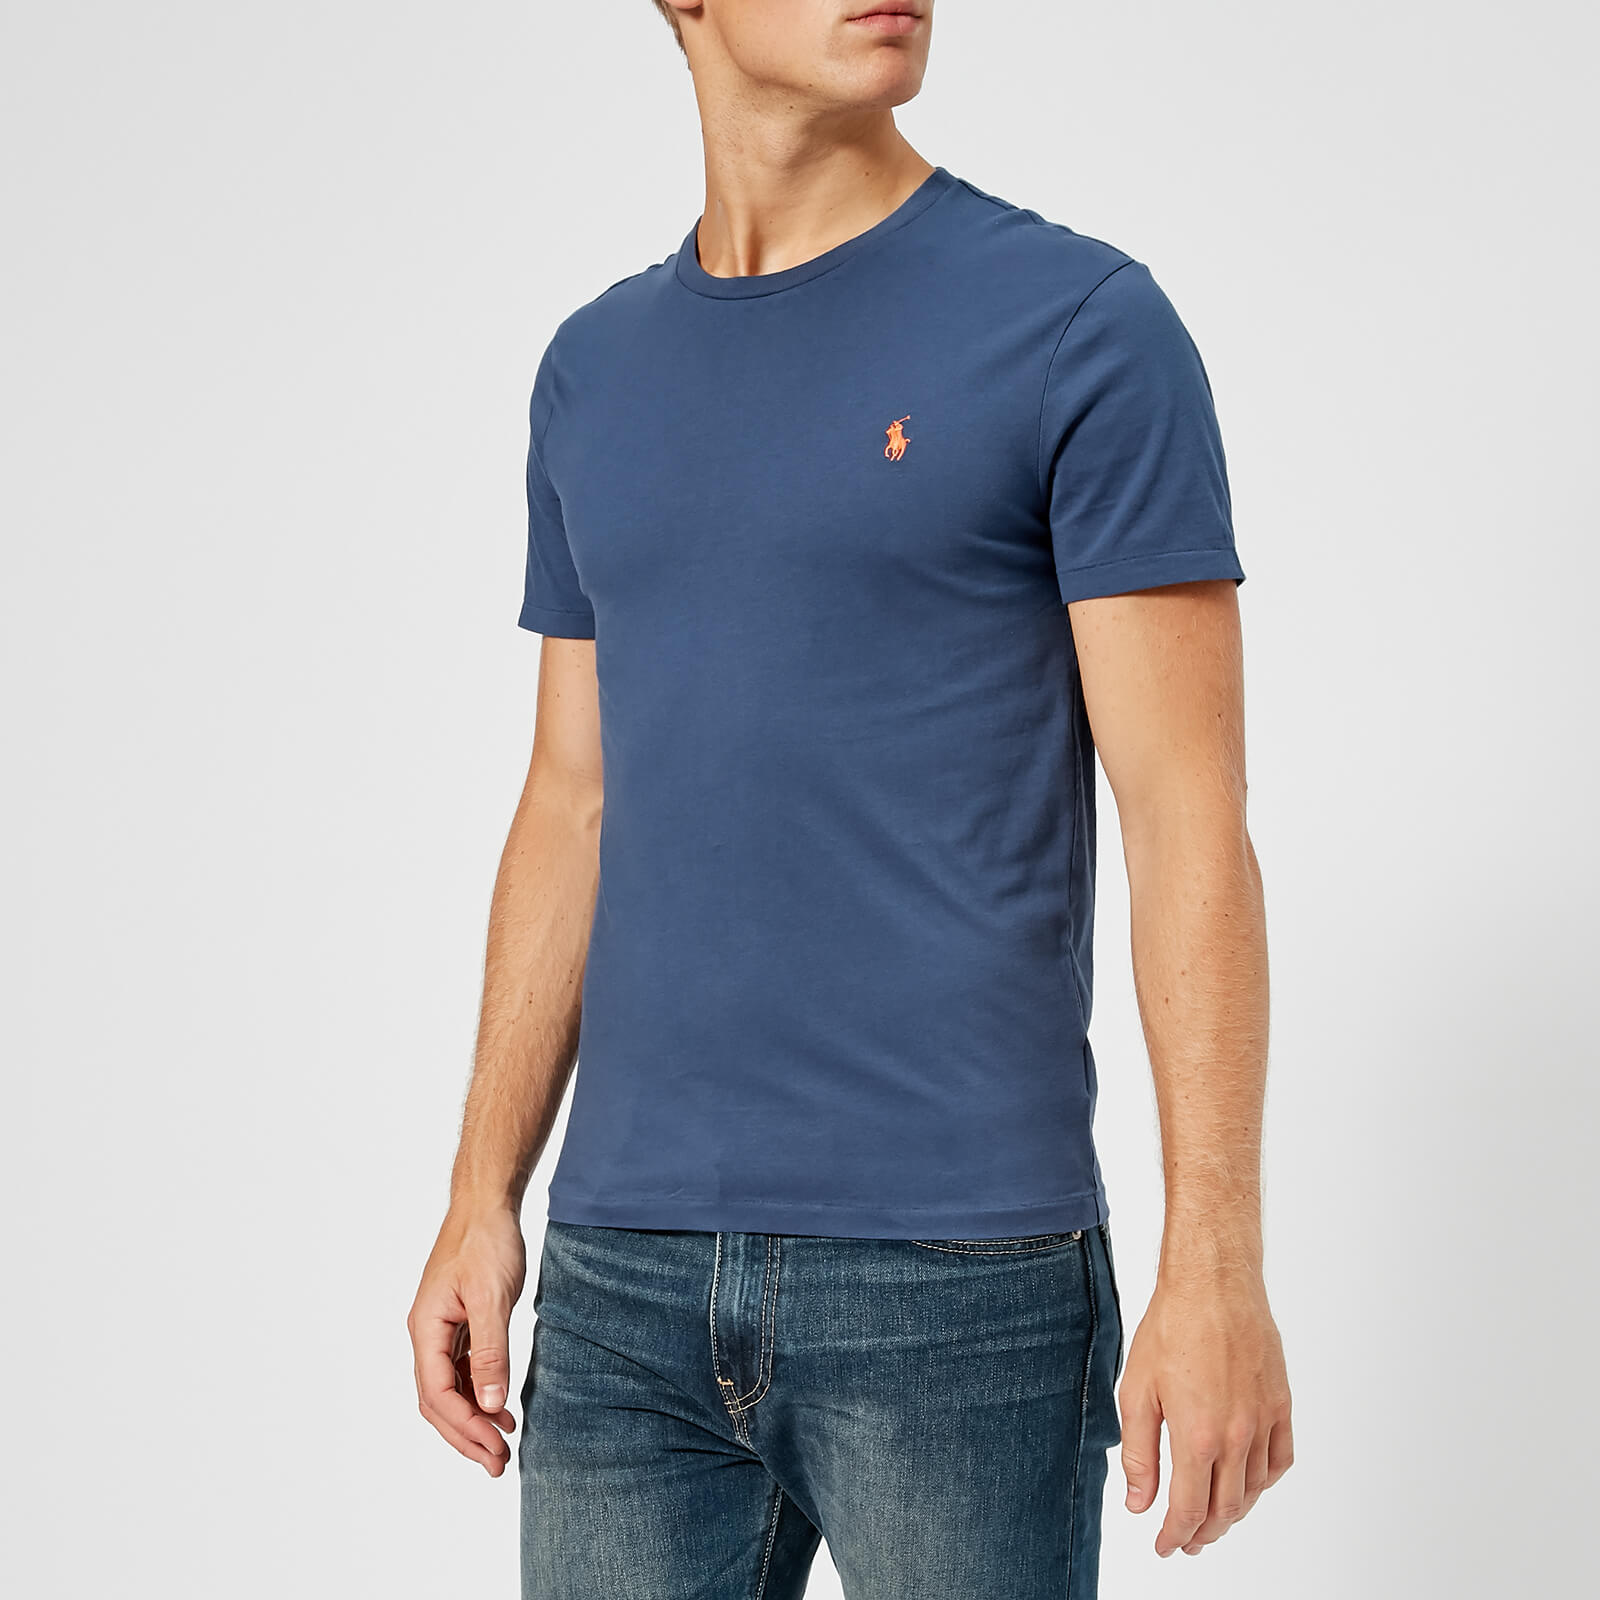 6bc073eb Polo Ralph Lauren Men's Custom Slim Fit T-Shirt - Boathouse Navy - Free UK  Delivery over £50